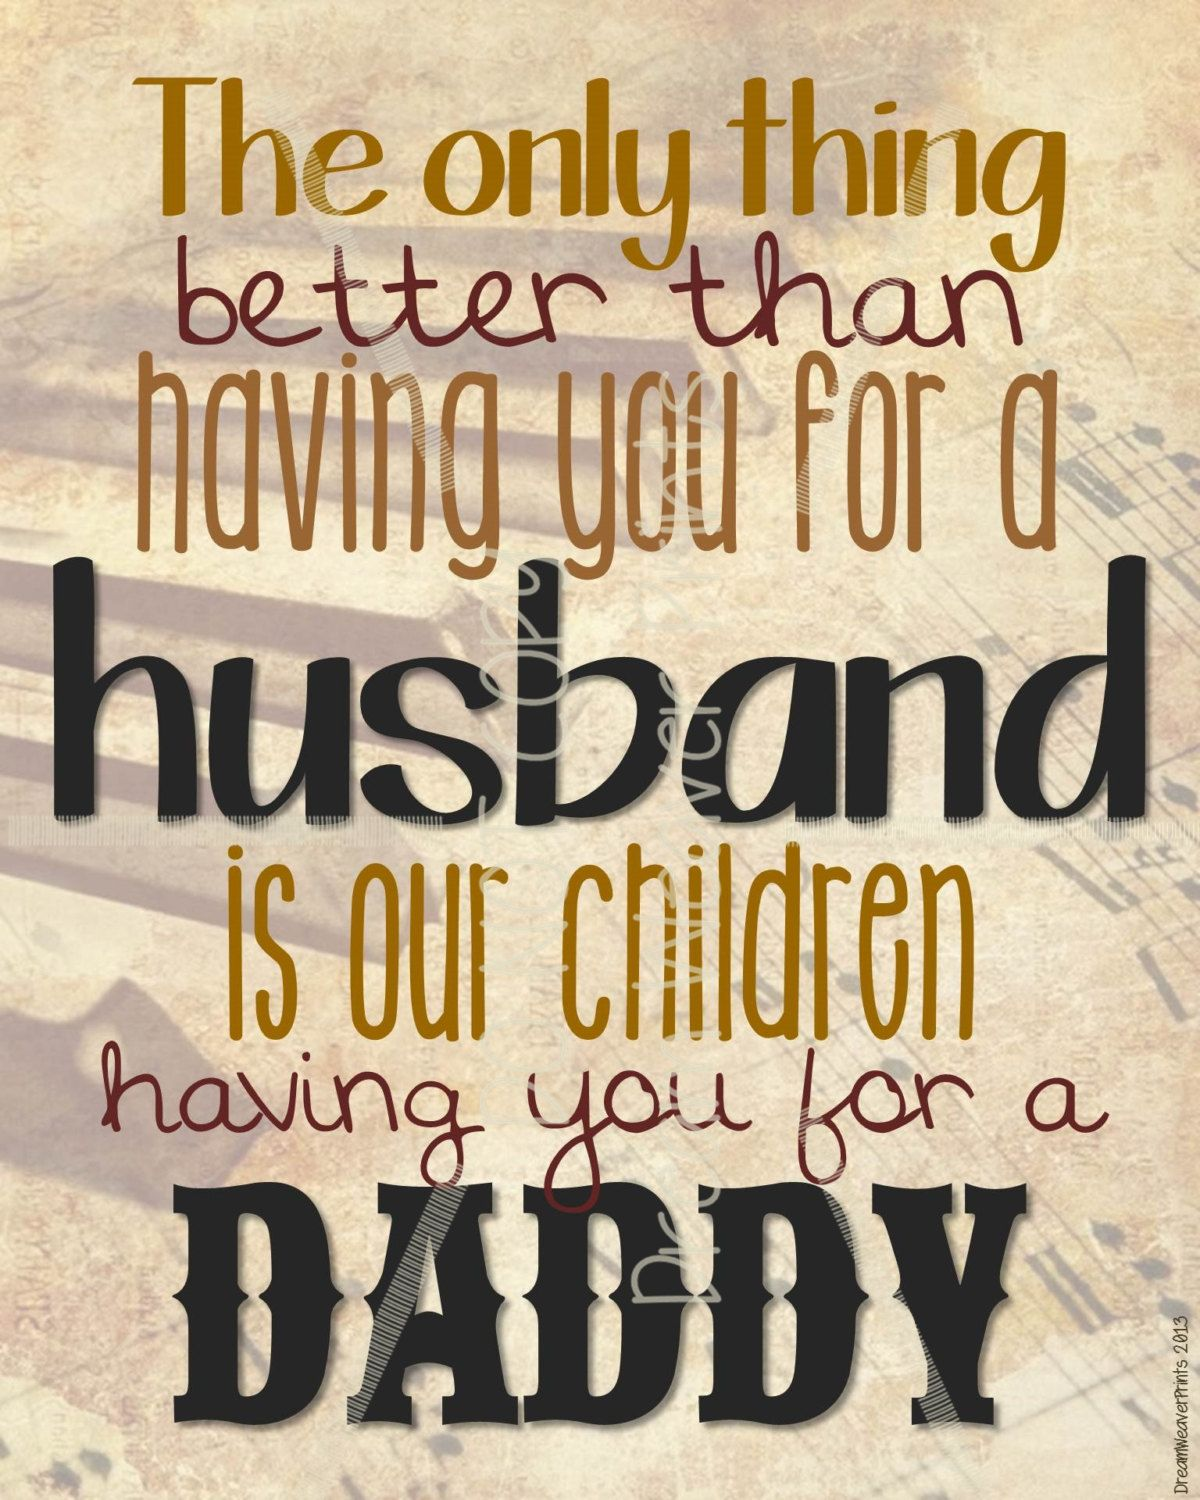 Happy fathers day wishes for husband httpquotesmeme happy fathers day wishes for husband httpquotesmemequoteshappy fathers day wishes husband m4hsunfo